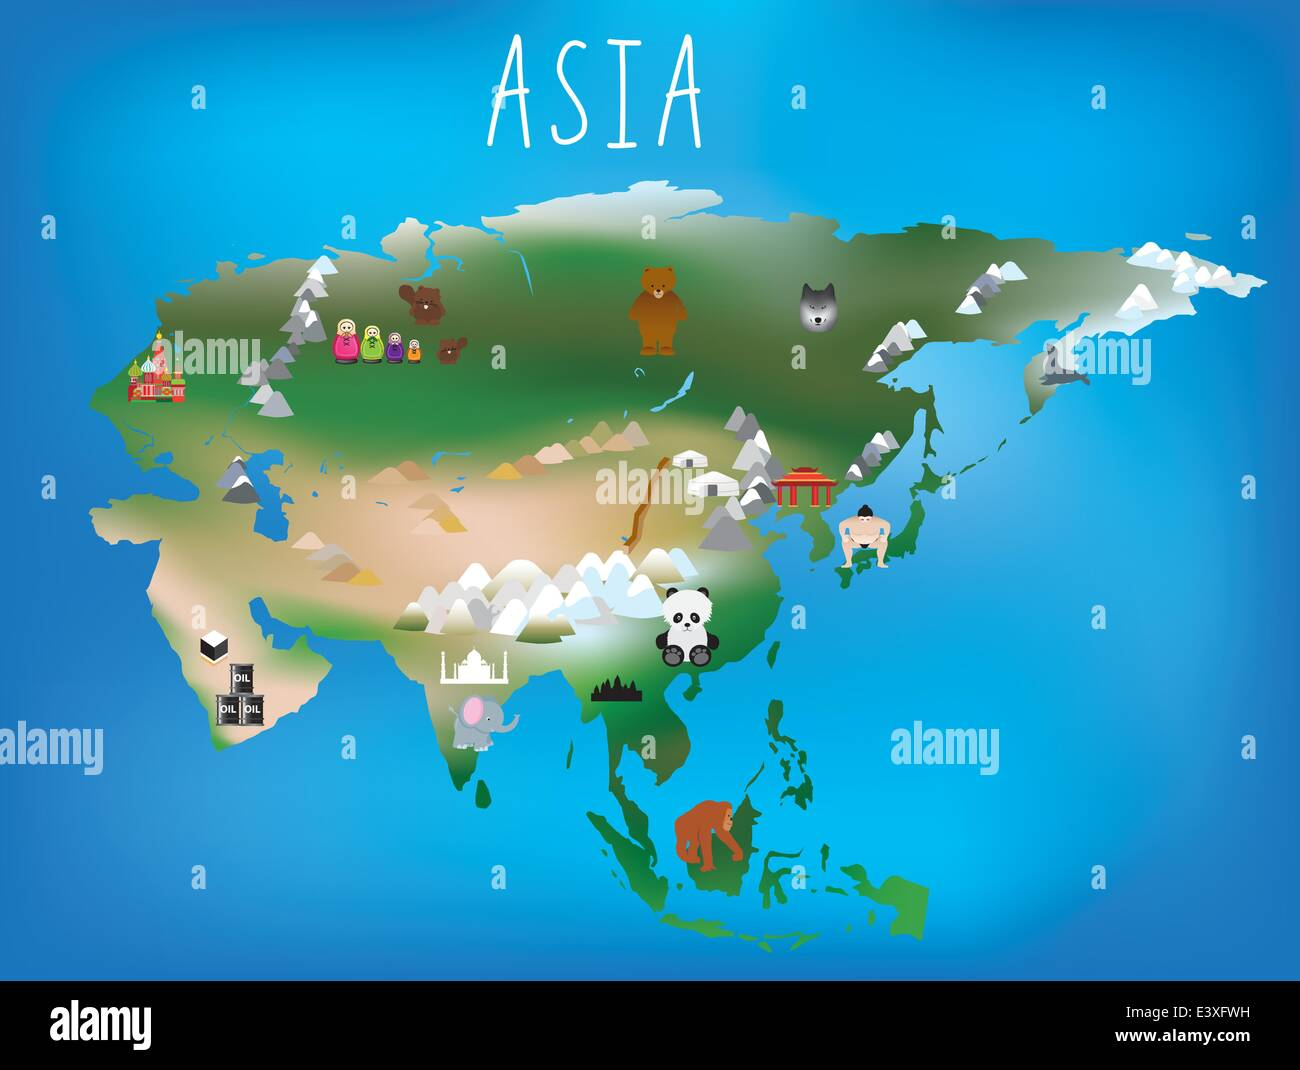 Cute illustrated map of asia with space to add country names in